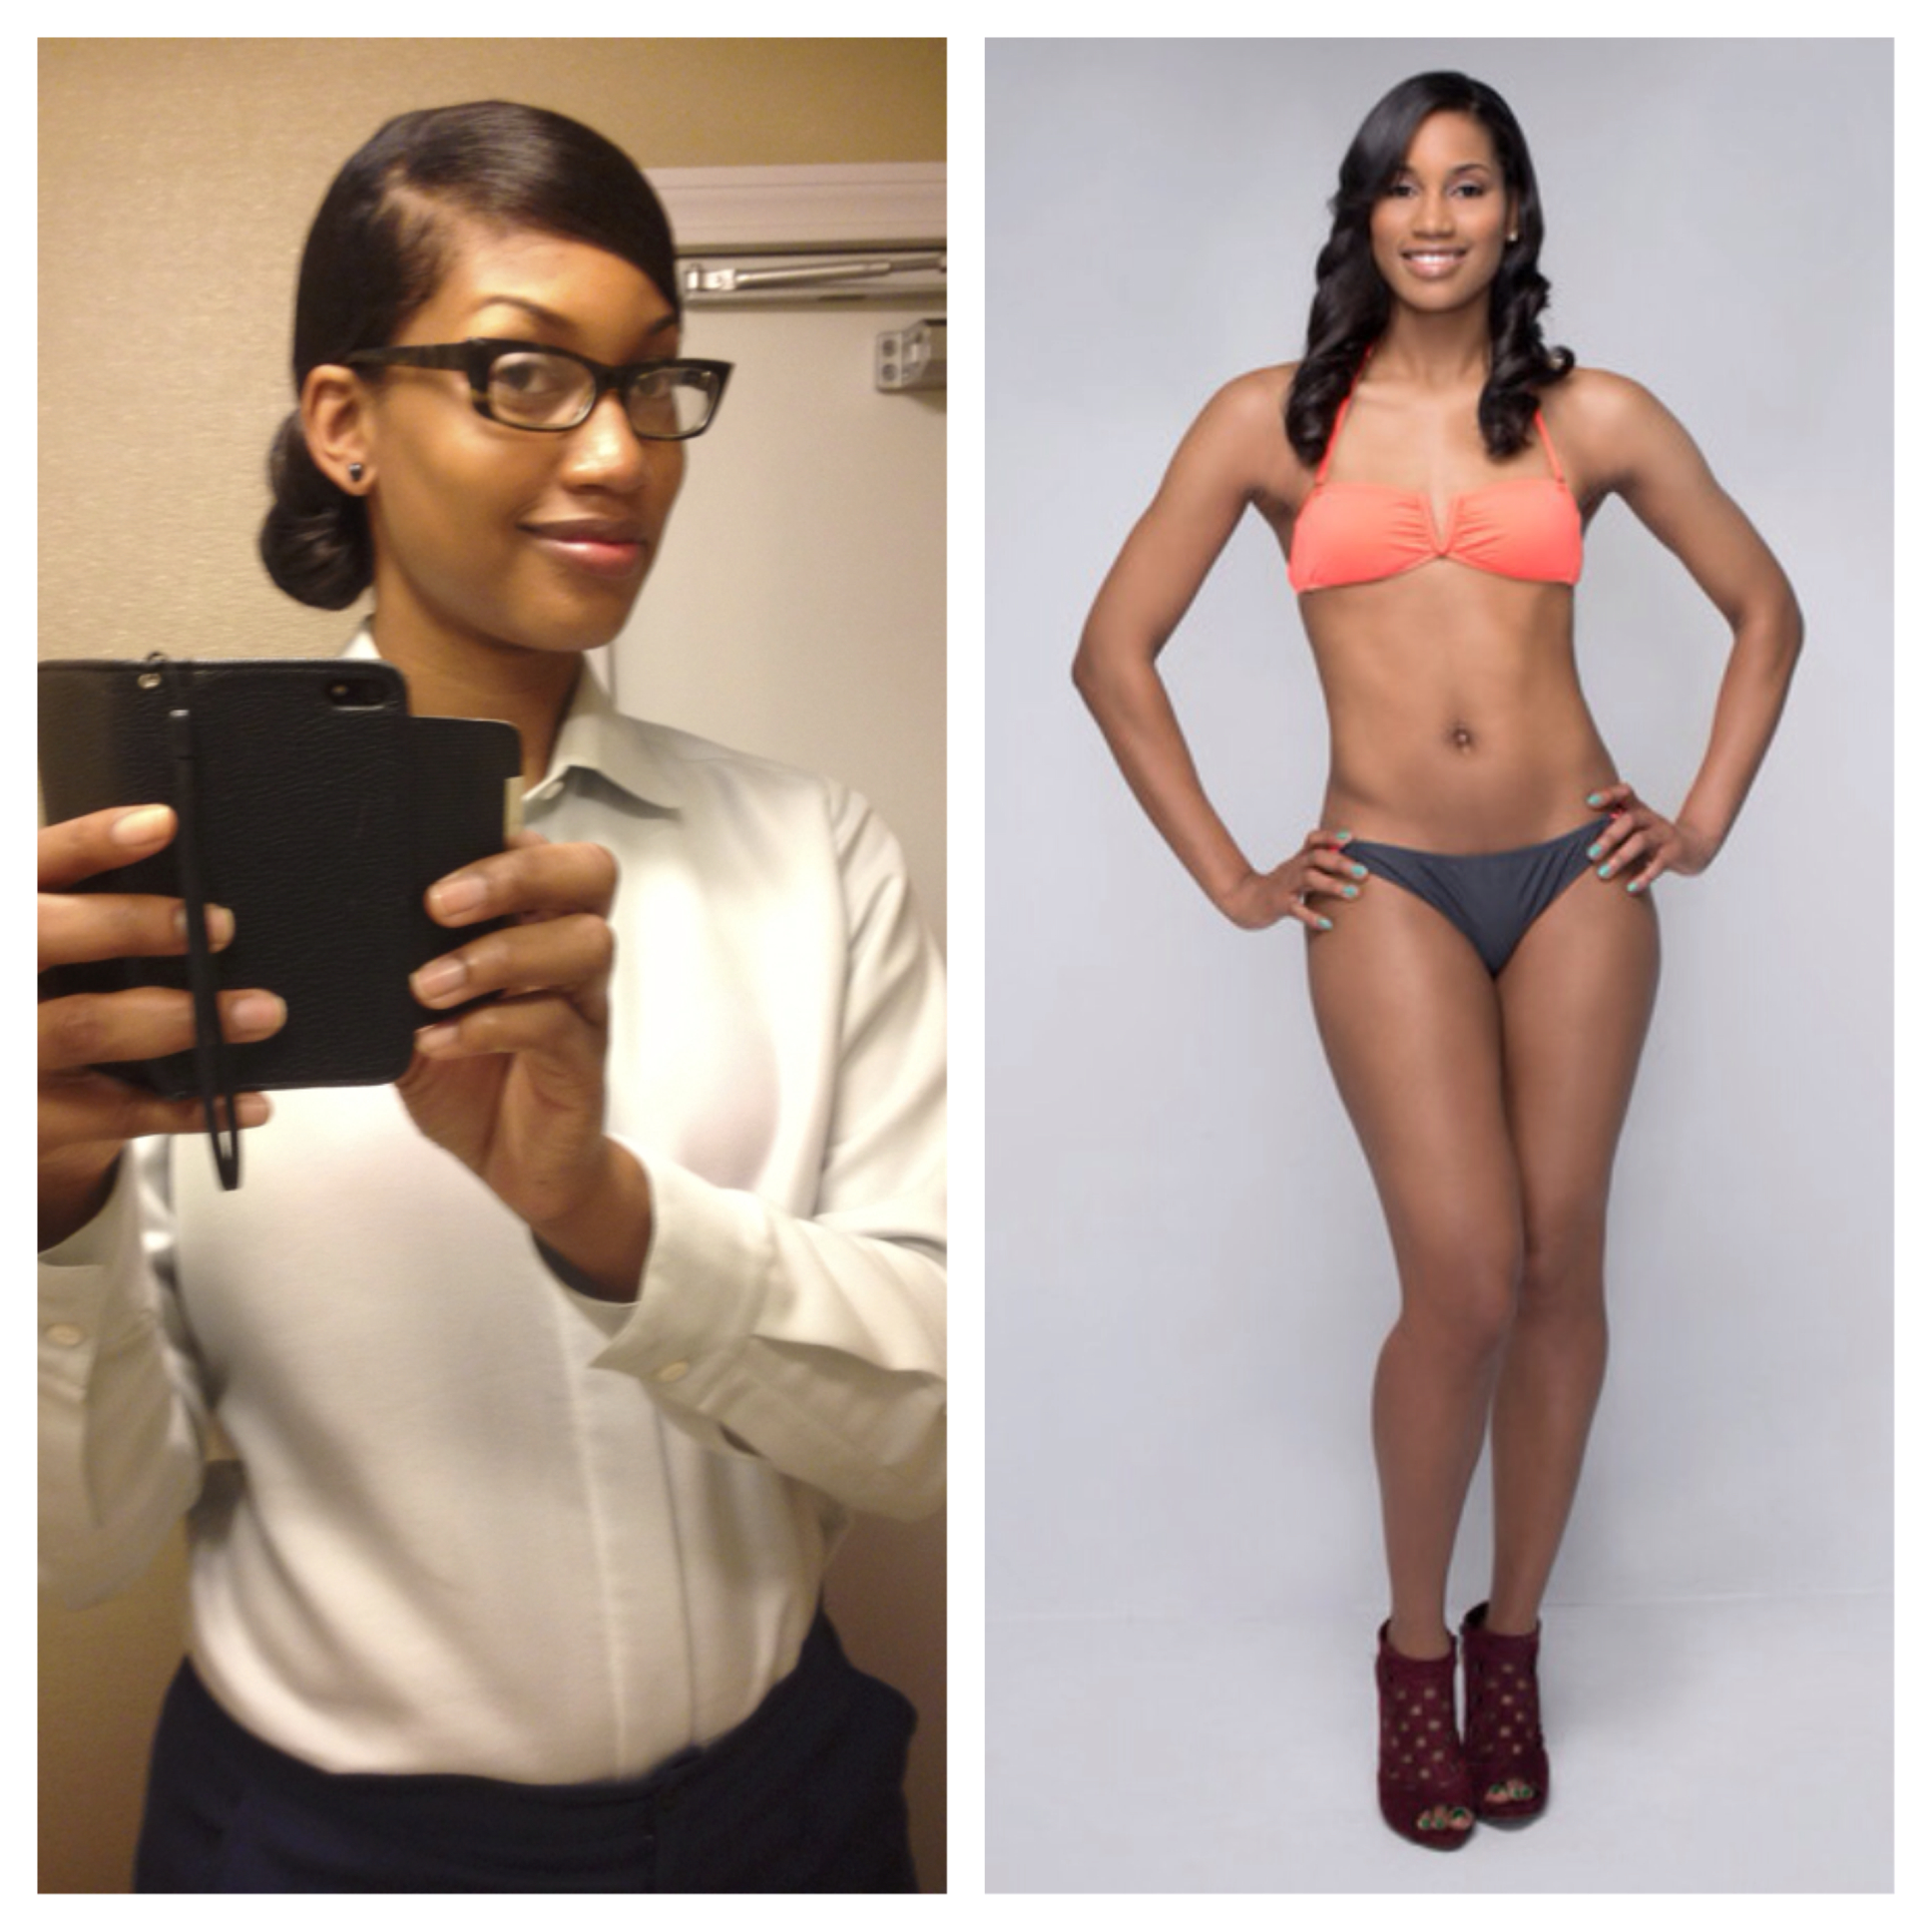 """""""Training with PT David Carson is the absolute best. I wasn't very knowledgeable about fitness a year ago and was concerned about getting too bulky and losing my """"curves"""" He was extremely patient and showed me 1) I first have to change my mindset and 2) I can be healthy, fit, and curvy in all the right places with hard work and dedication!"""""""